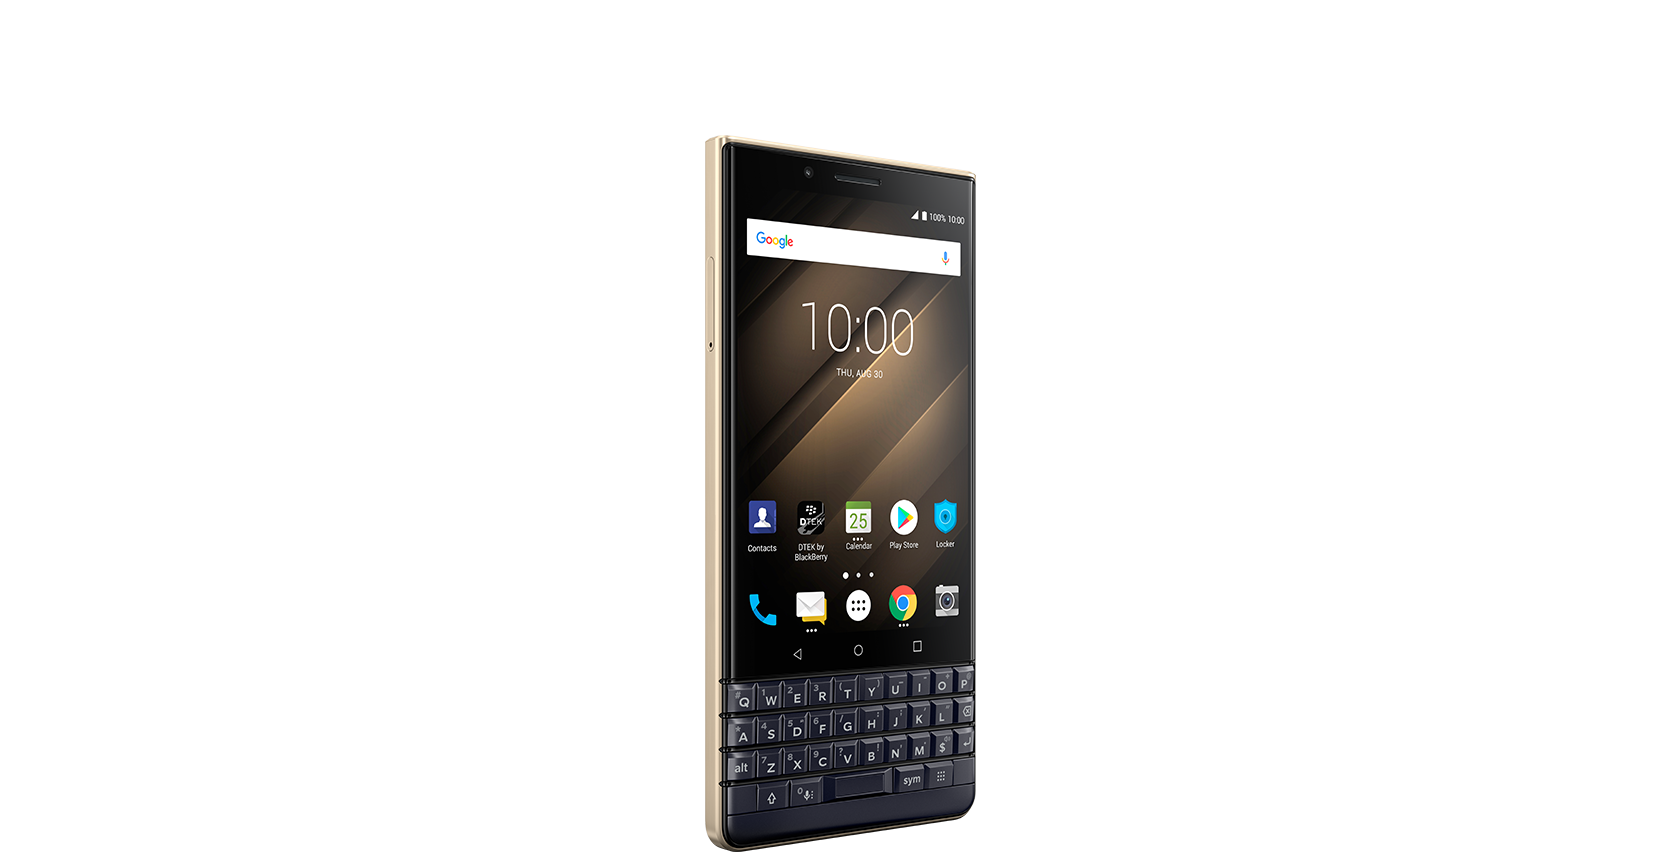 key 2 le champagne - BlackBerry KEY 2 LE